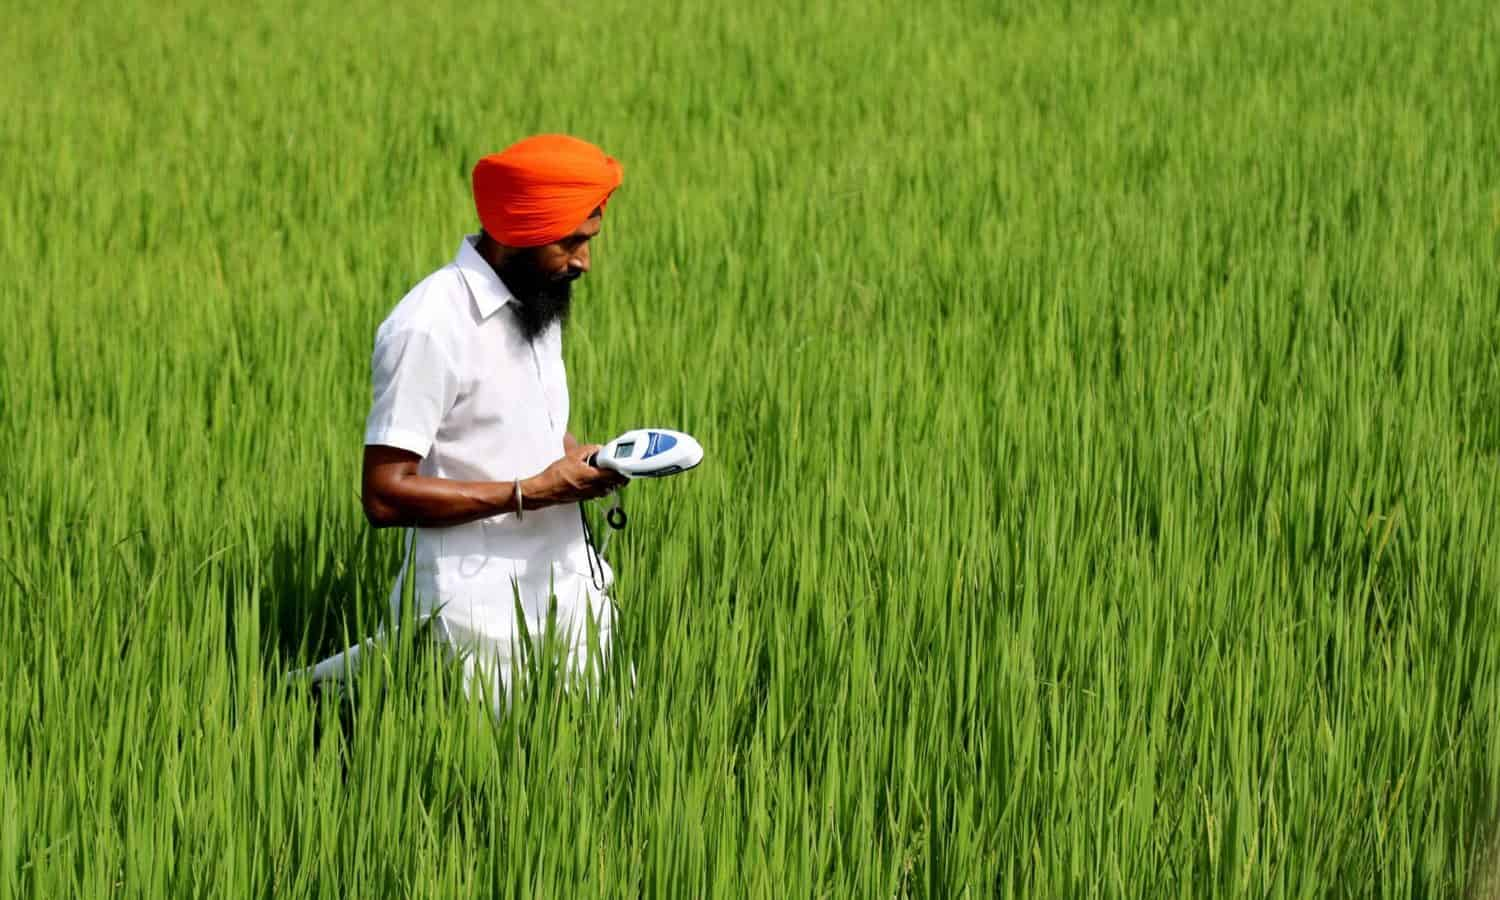 The use of Big Data in farming could usher in a new era for agricultural development. The CGIAR Platform for Big Data in Agriculture is leading the way forward, incorporating these tools in the work of 8,000 researchers worldwide.